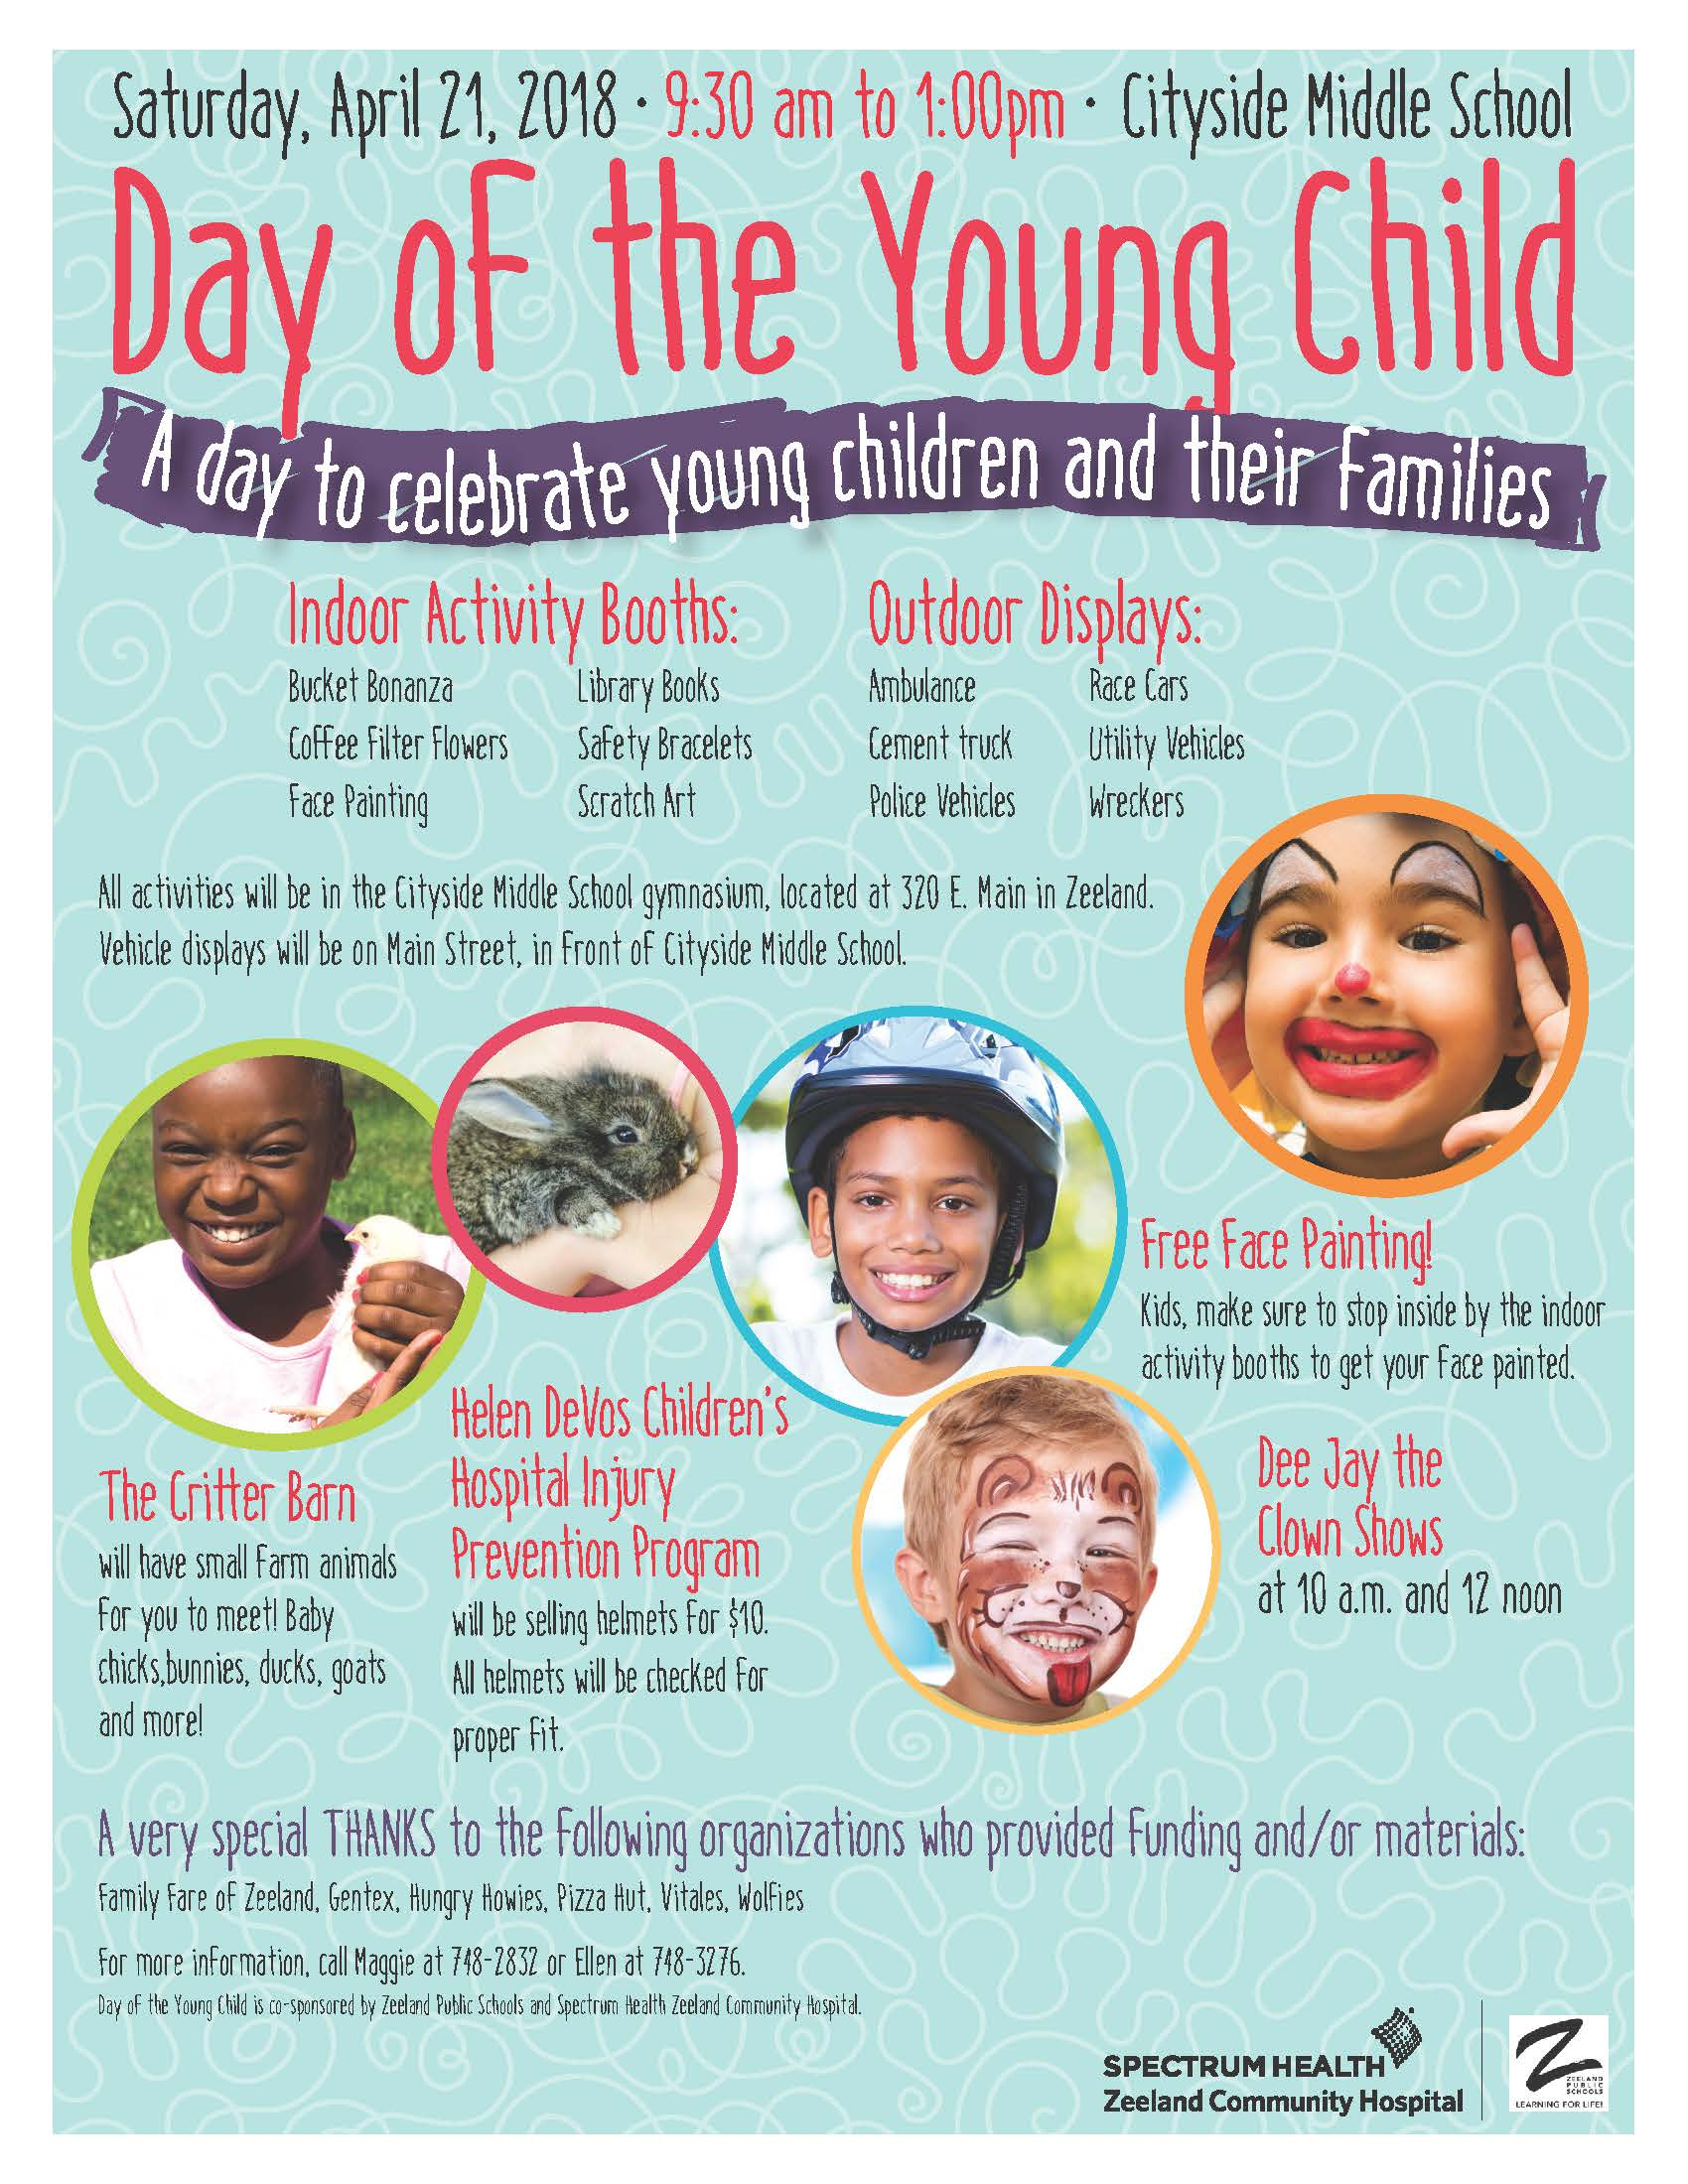 Day of the Young Child Flyer-2018